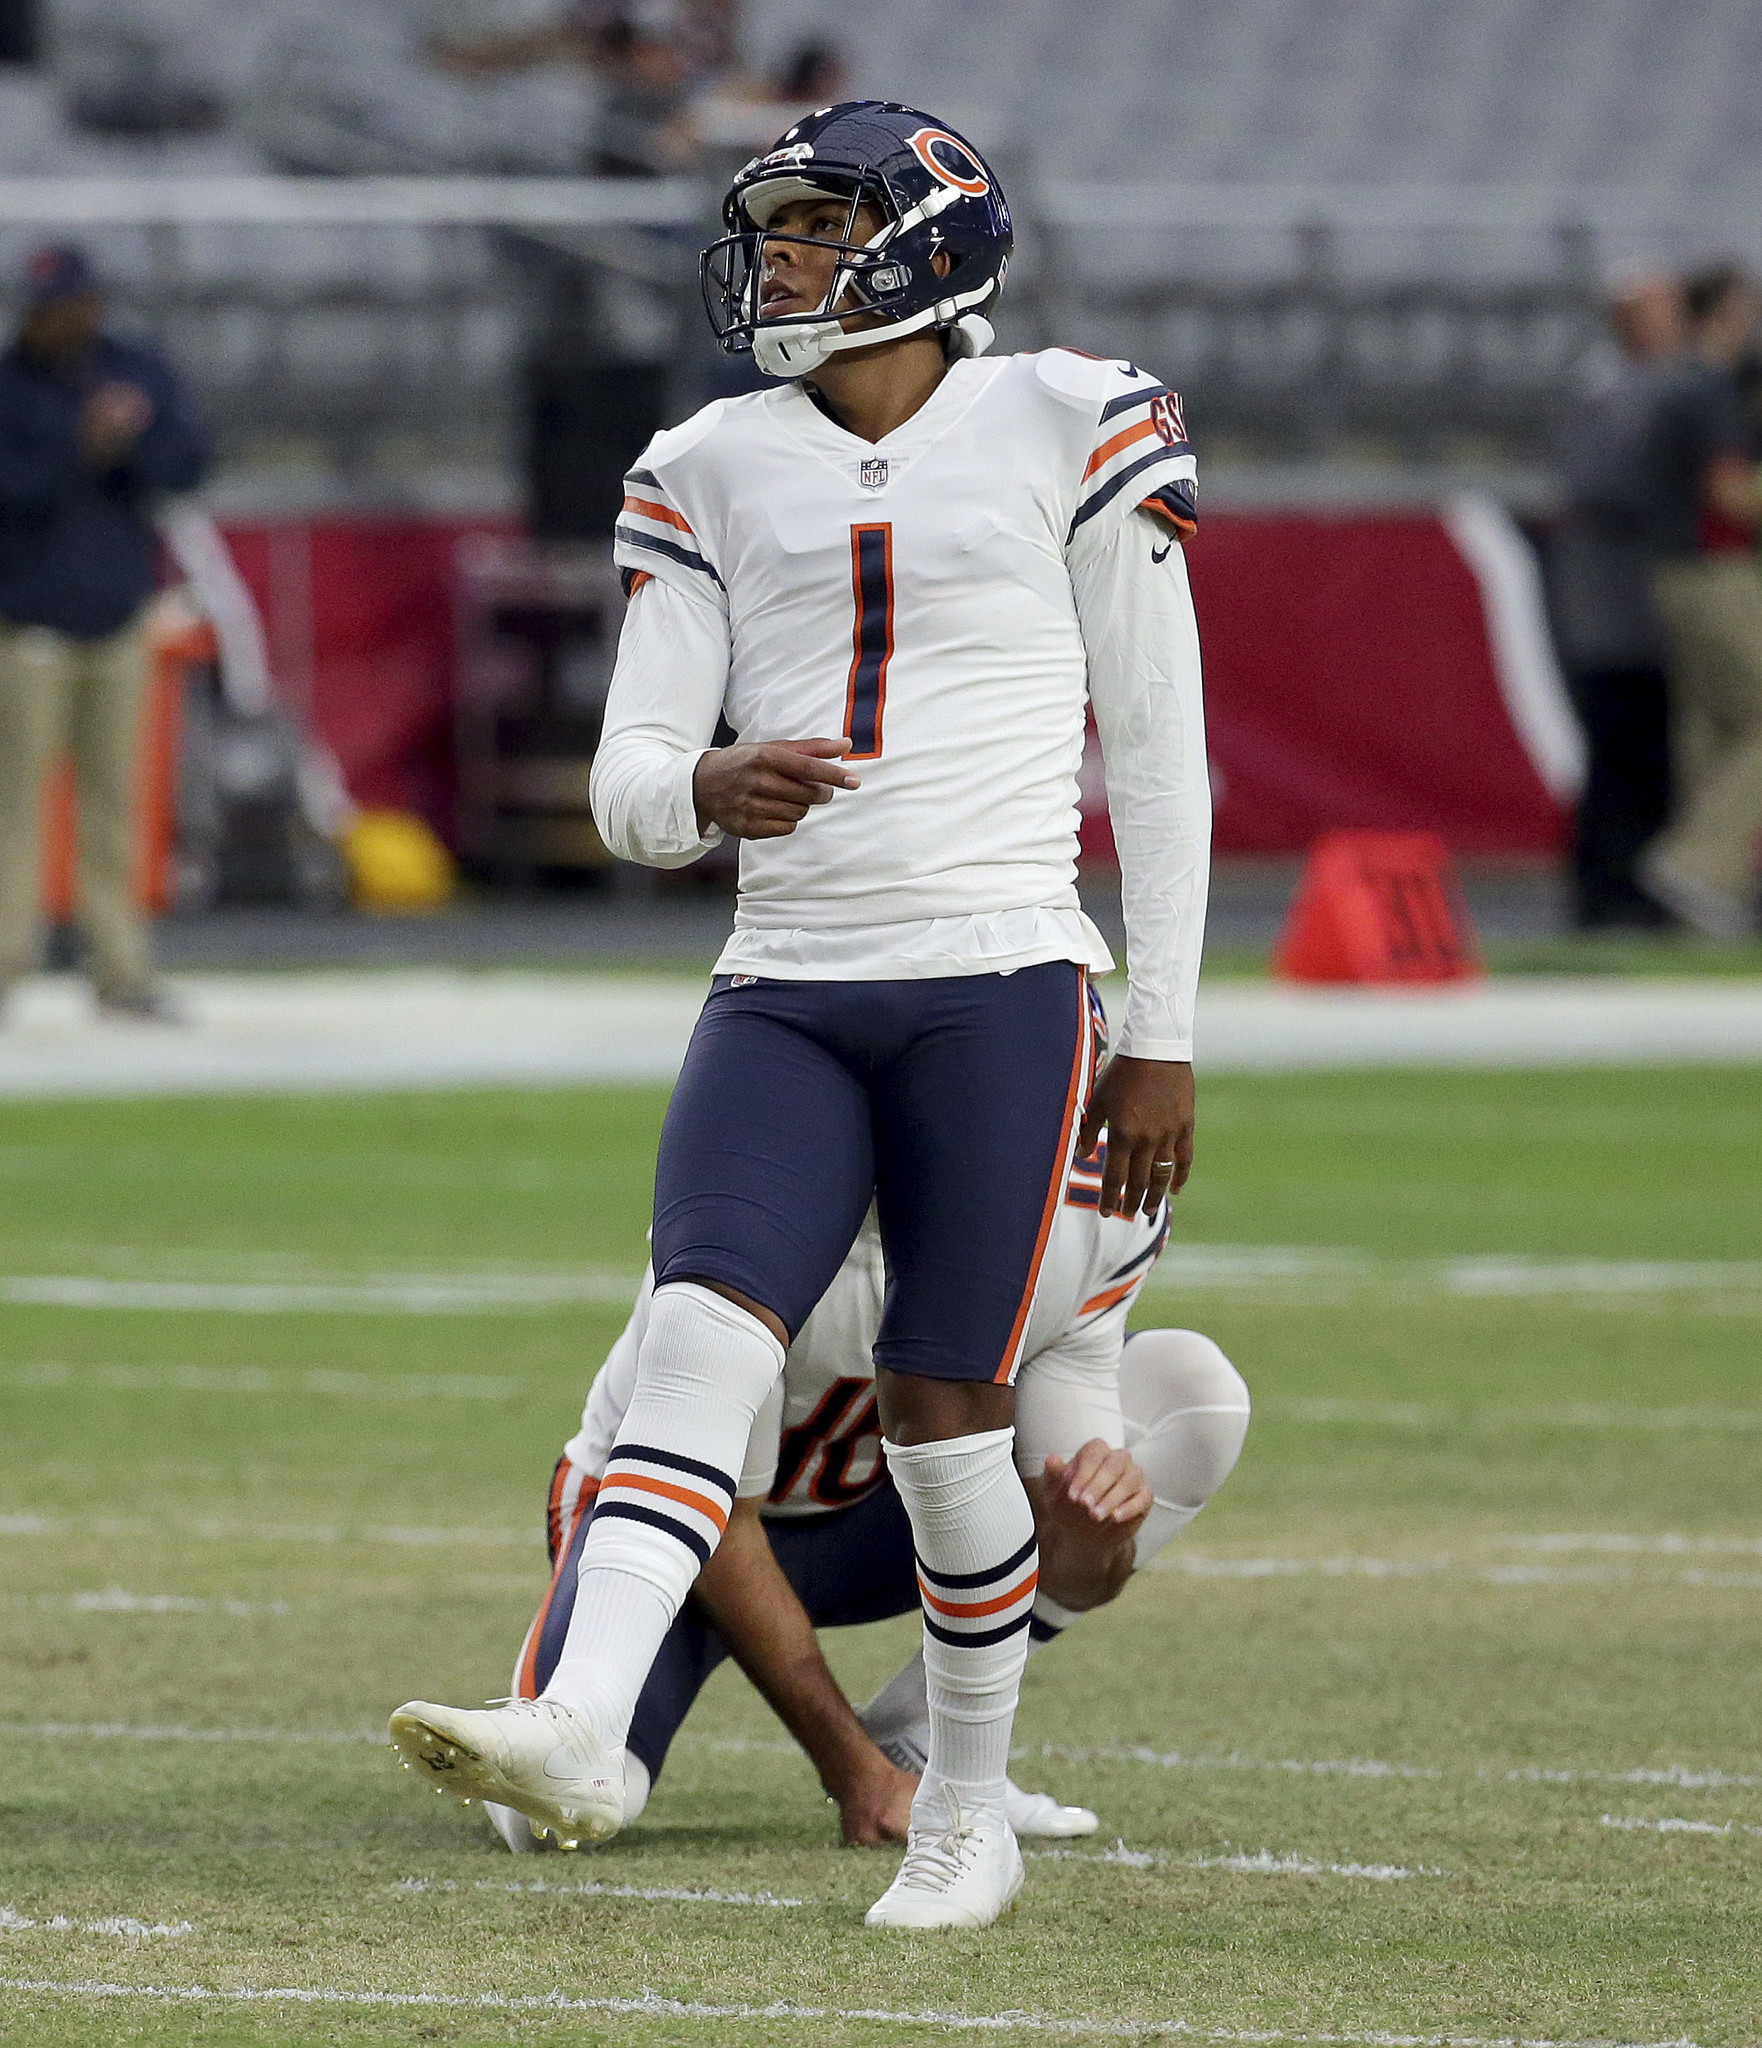 Ct-roberto-aguayo-bears-kicking-competition-20170820